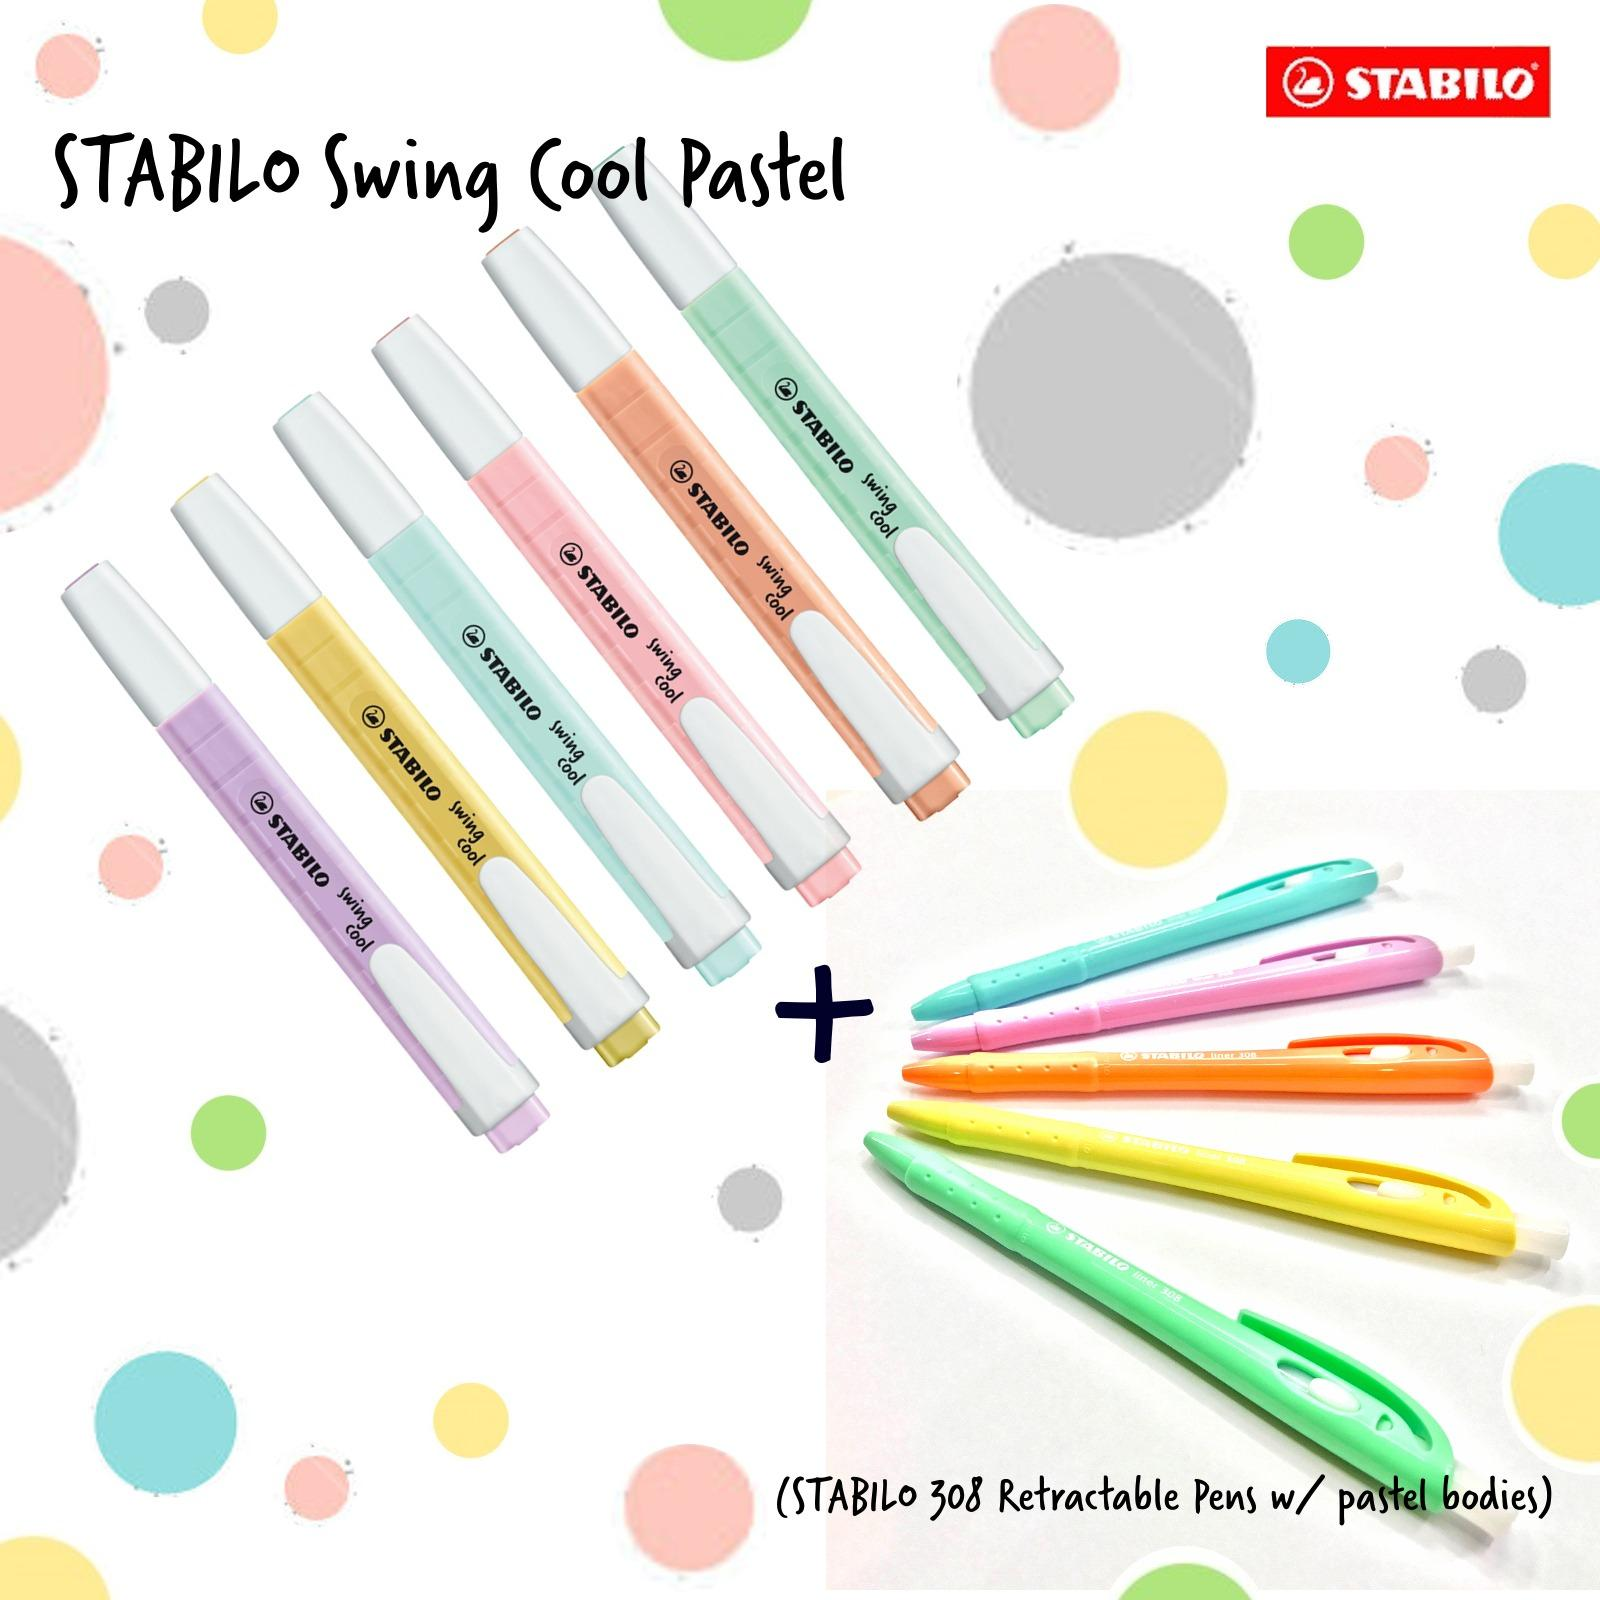 Where To Buy Stabilo Swing Cool Pastel Highlighter 6Pcs W 308 Pastel Bodied Pens 5 Pcs